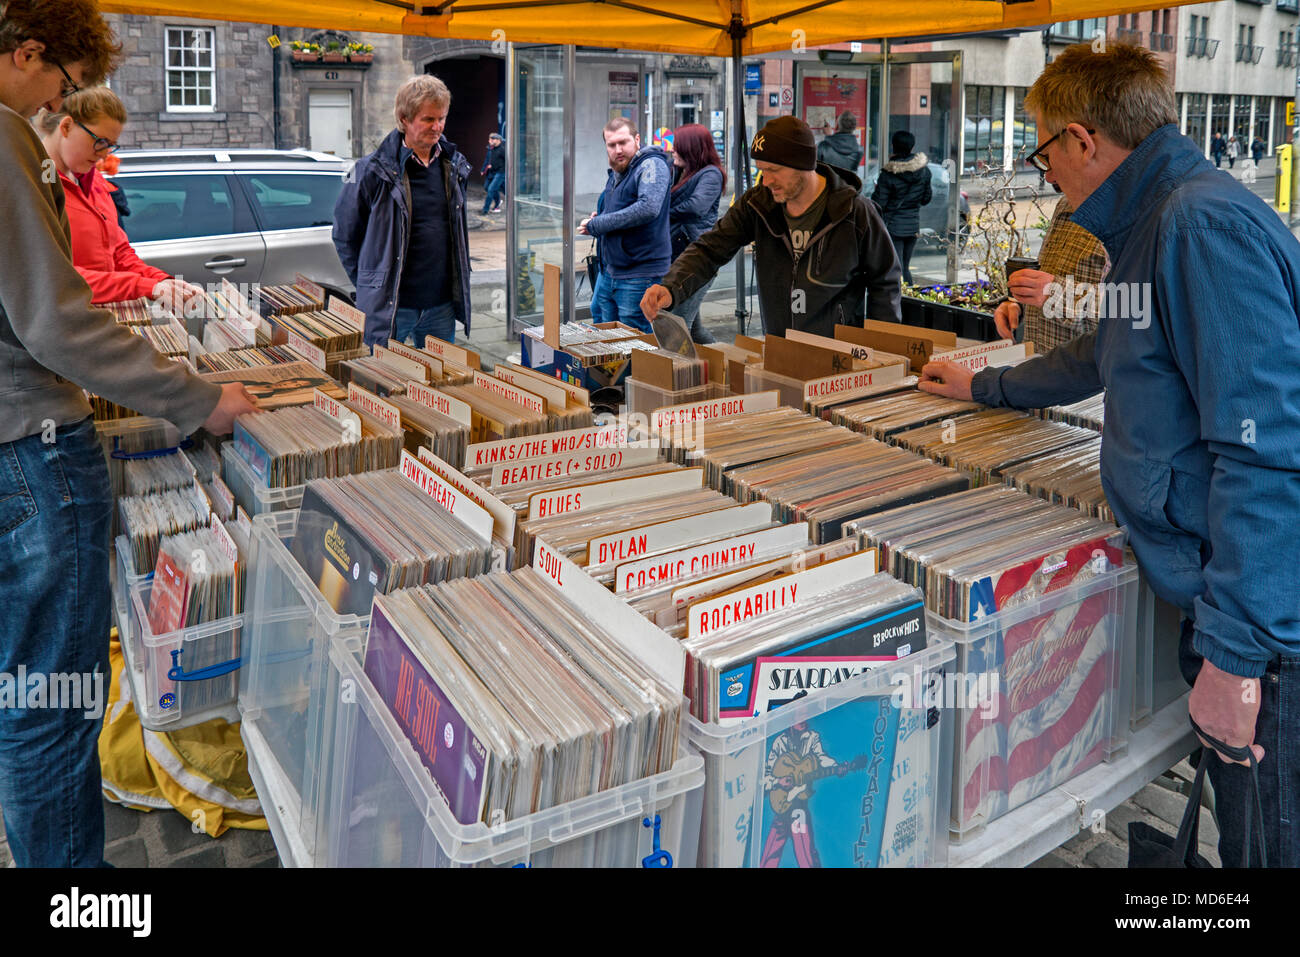 Customers browsing through vinyl records on a stall in the